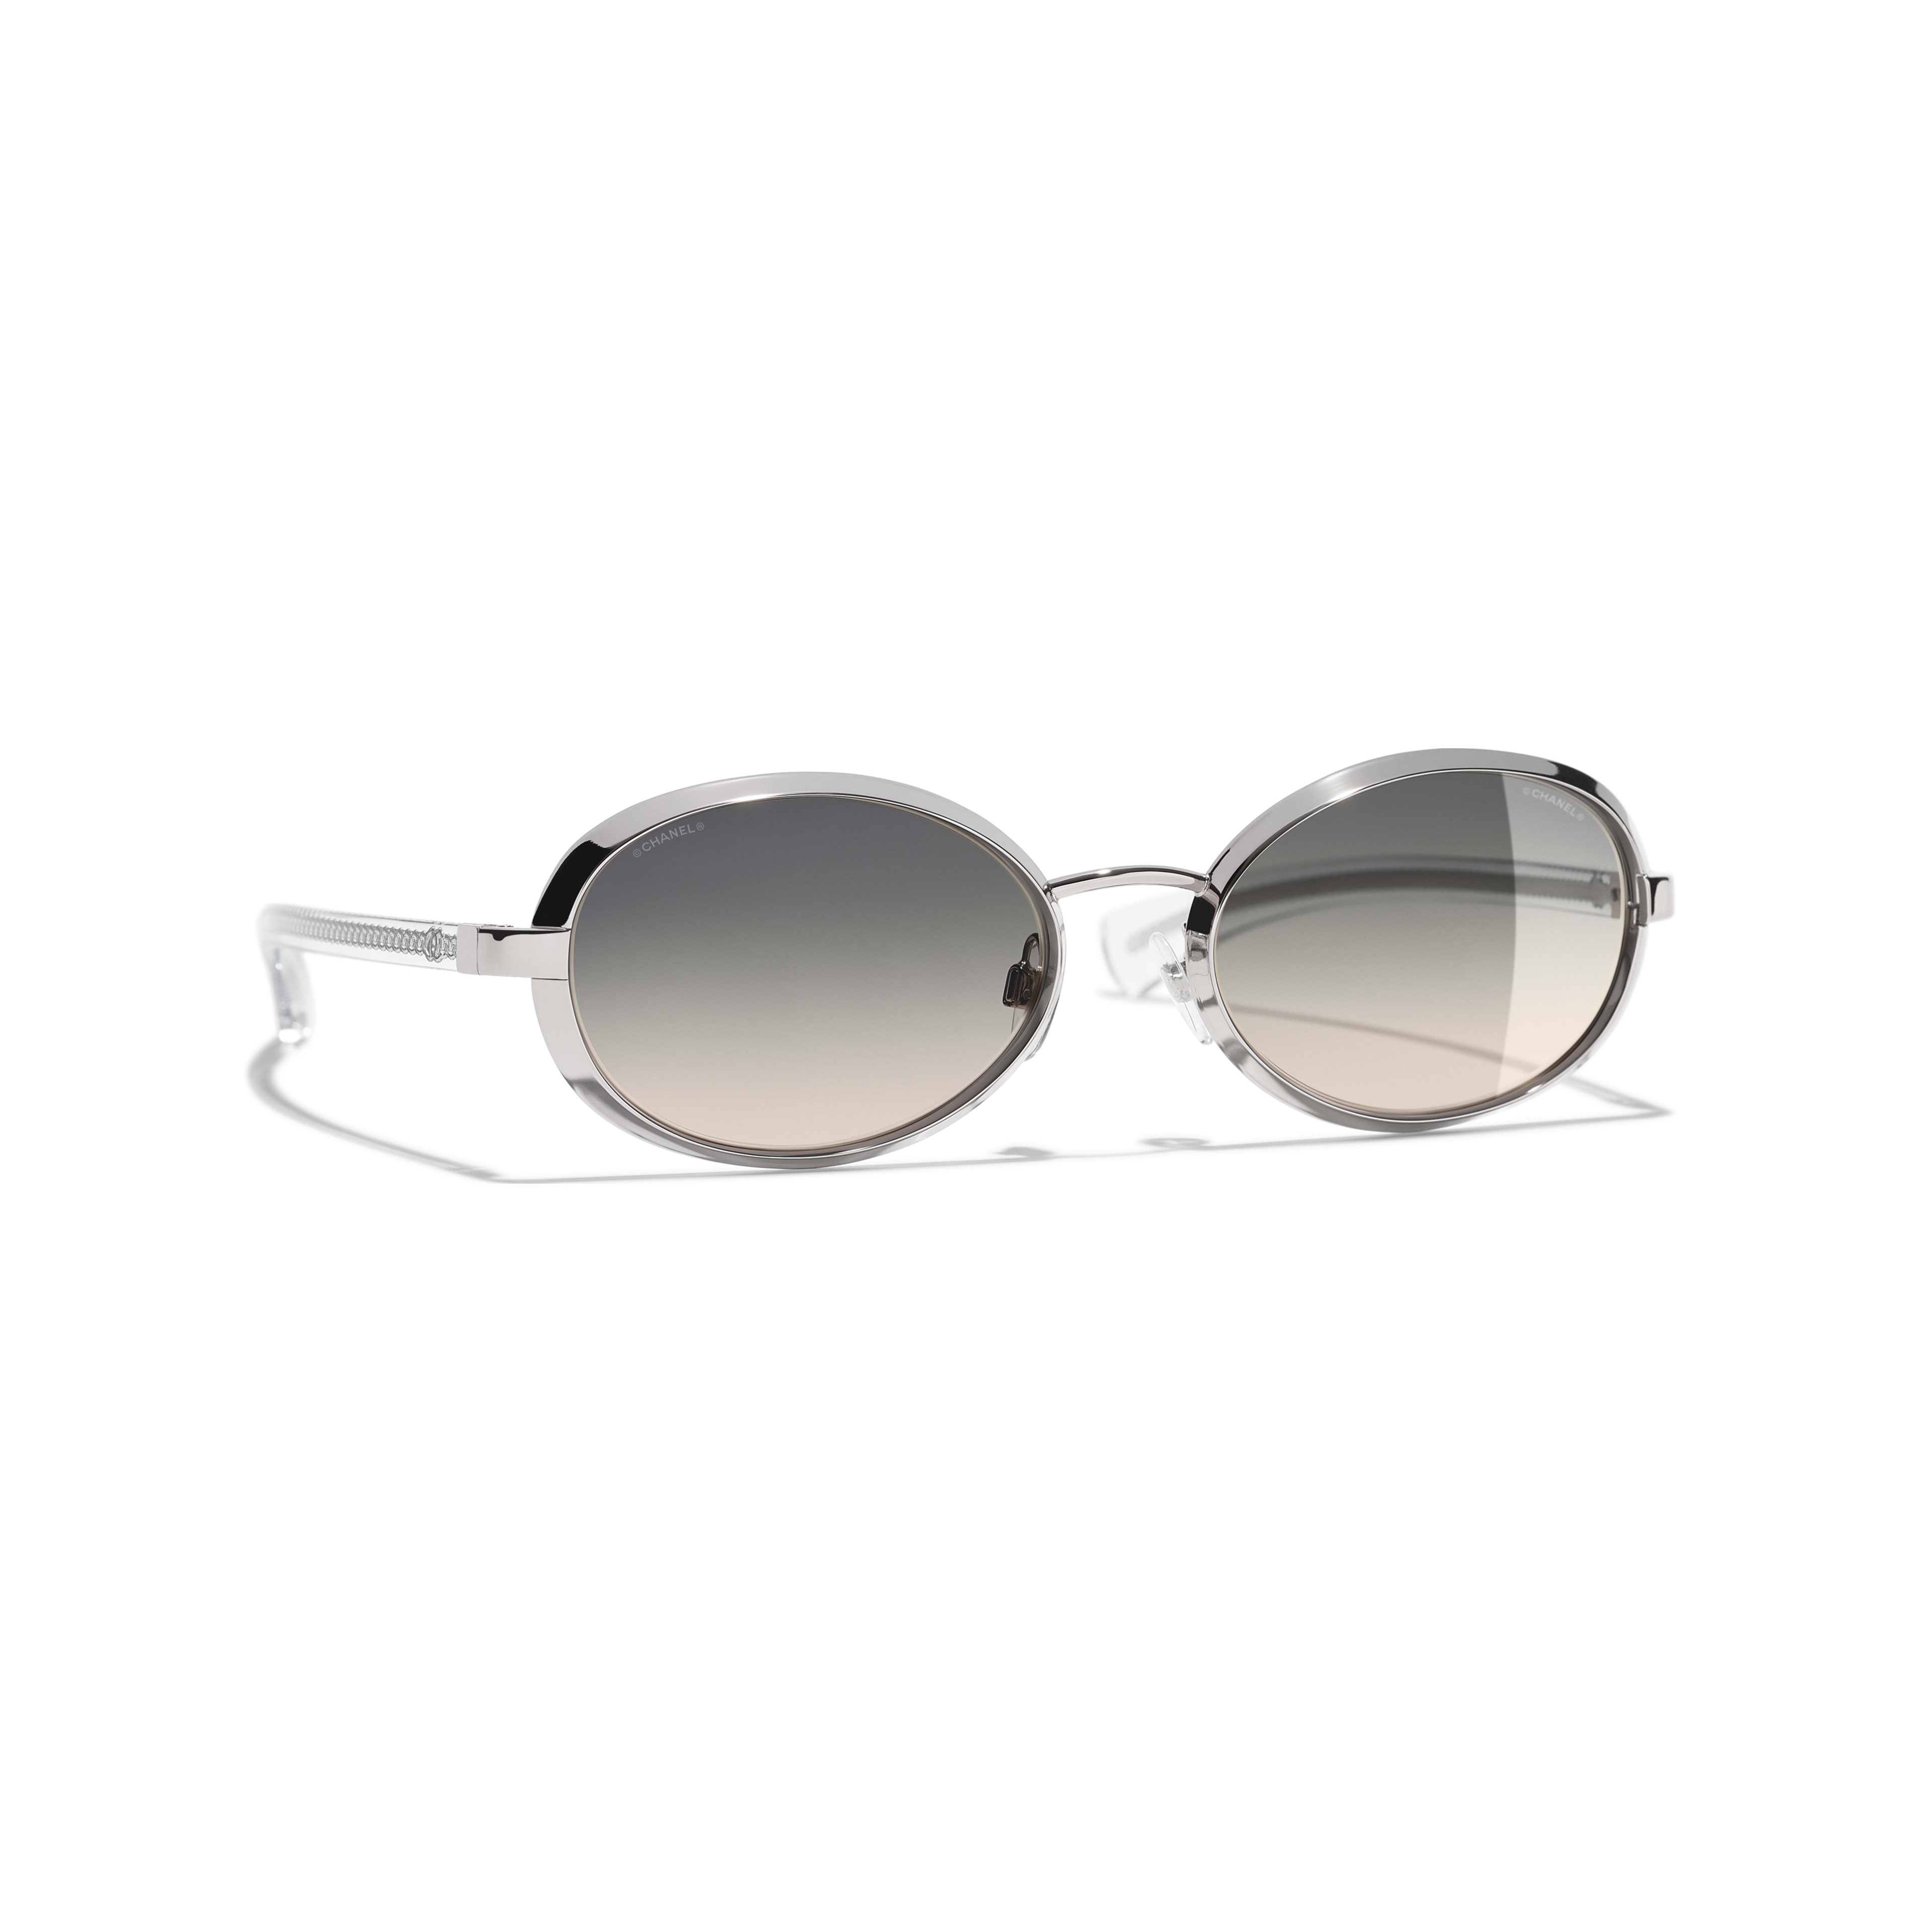 Oval Sunglasses Acetate & Metal Silver -                                               view 1 - see full sized version